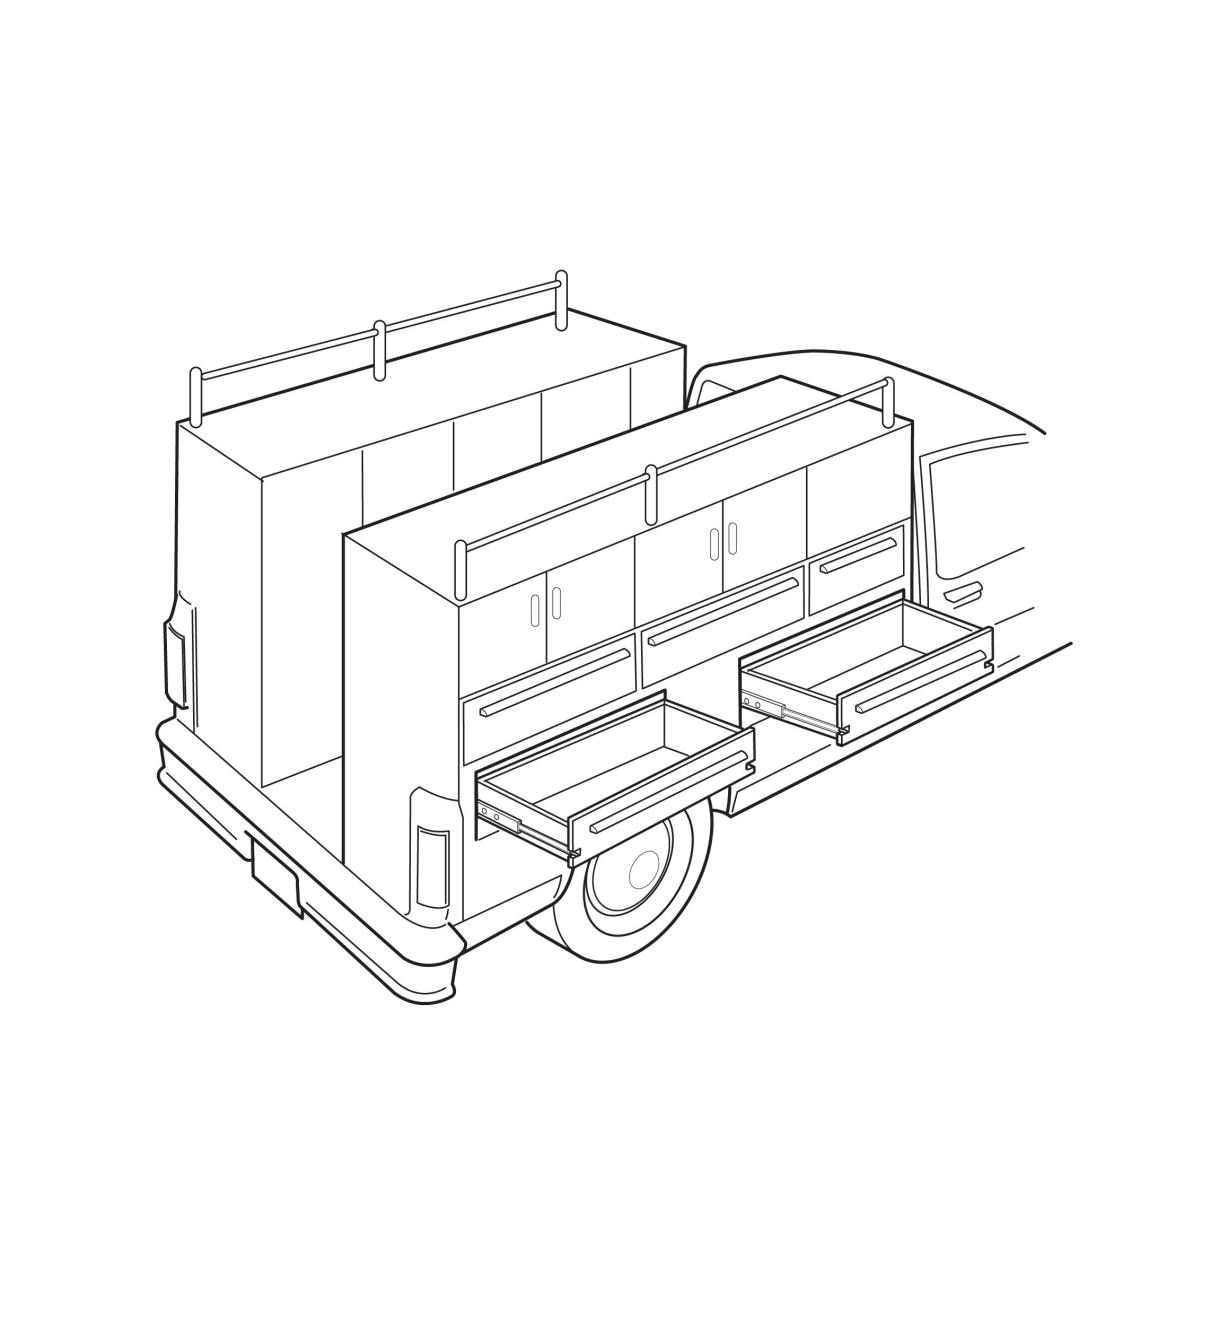 Illustration of slides used for storage in a truck bed